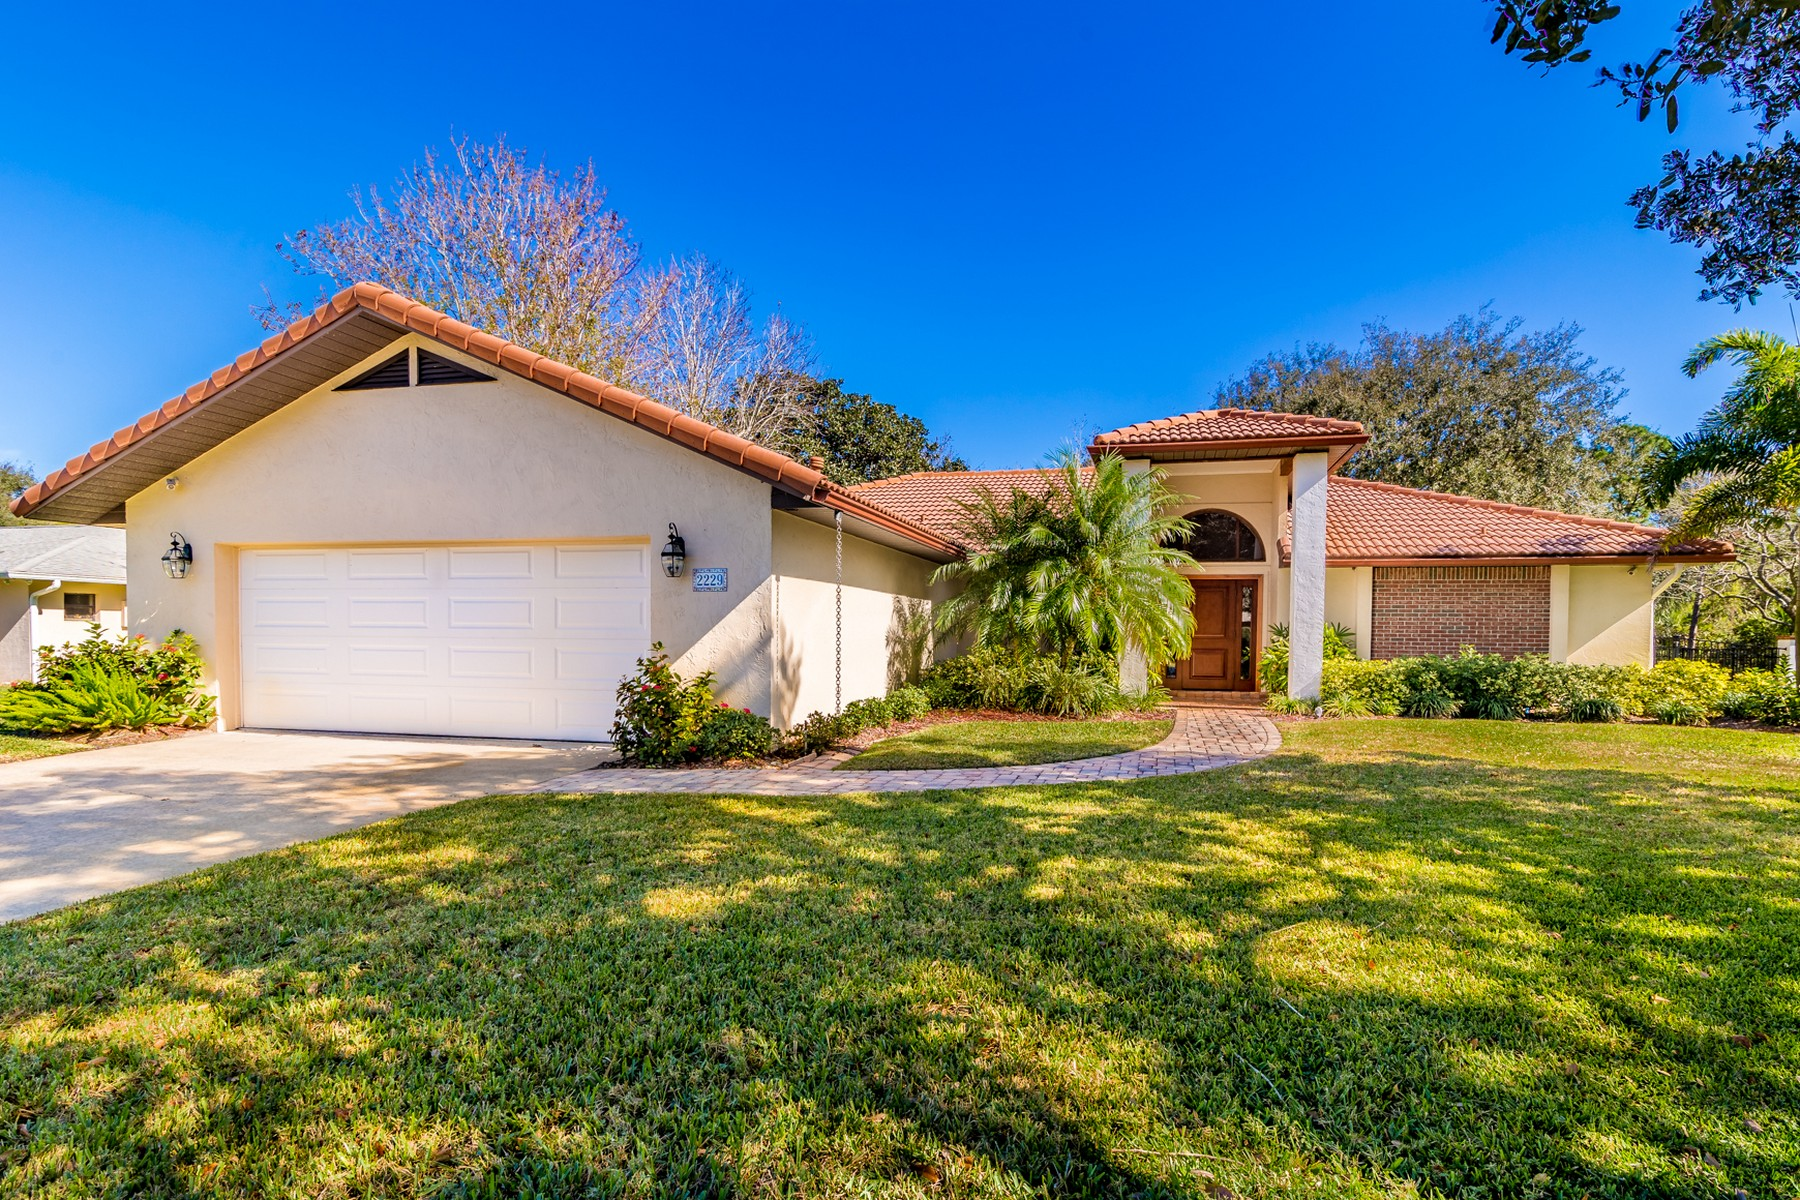 Property for Sale at Updated home on quiet street in convenient Melbourne location 2229 Woodlawn Circle Melbourne, Florida 32934 United States